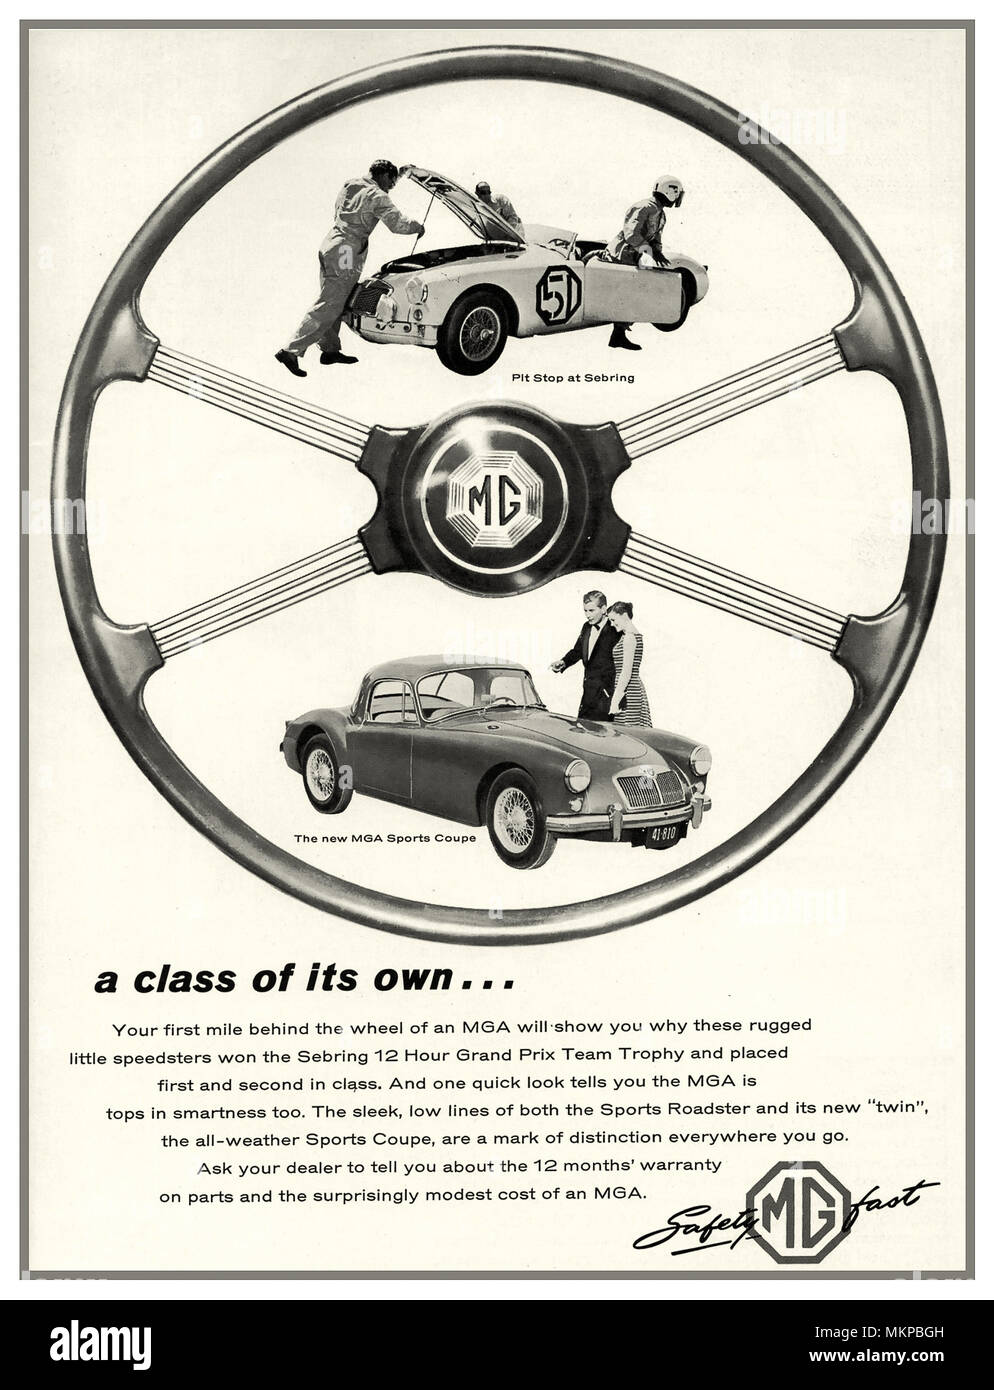 MGA Sports Car Vintage 1950's Press Advertisement for The MGA  a sports car that was produced by MG in the UK from 1955 to 1962 Announced on 26 September 1955 the car was officially launched at the Frankfurt Motor Show. - Stock Image